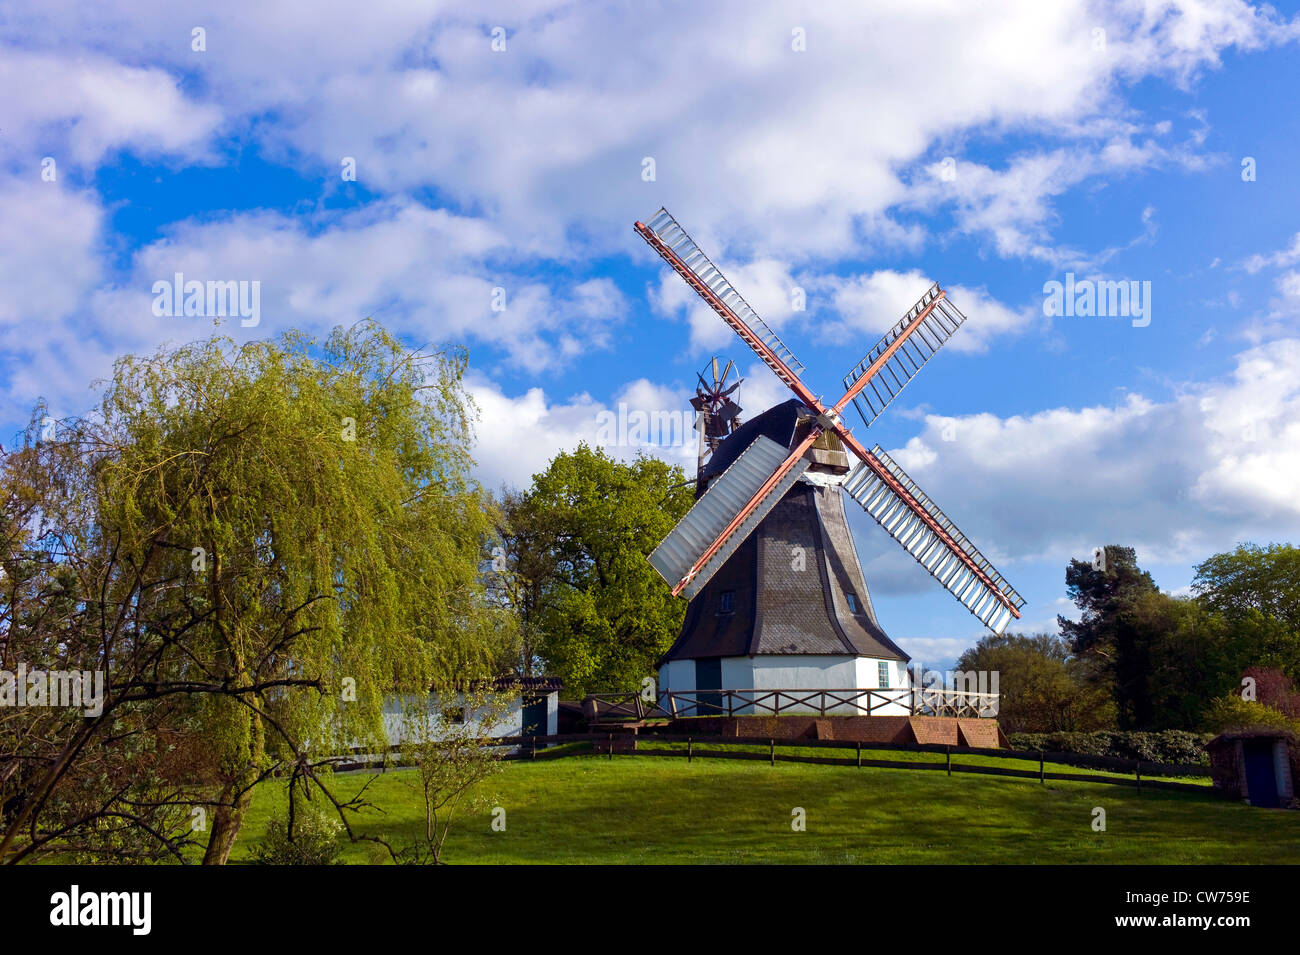 windmill, Germany, Lower Saxony, Landkreis Osterholz, Worpswede - Stock Image